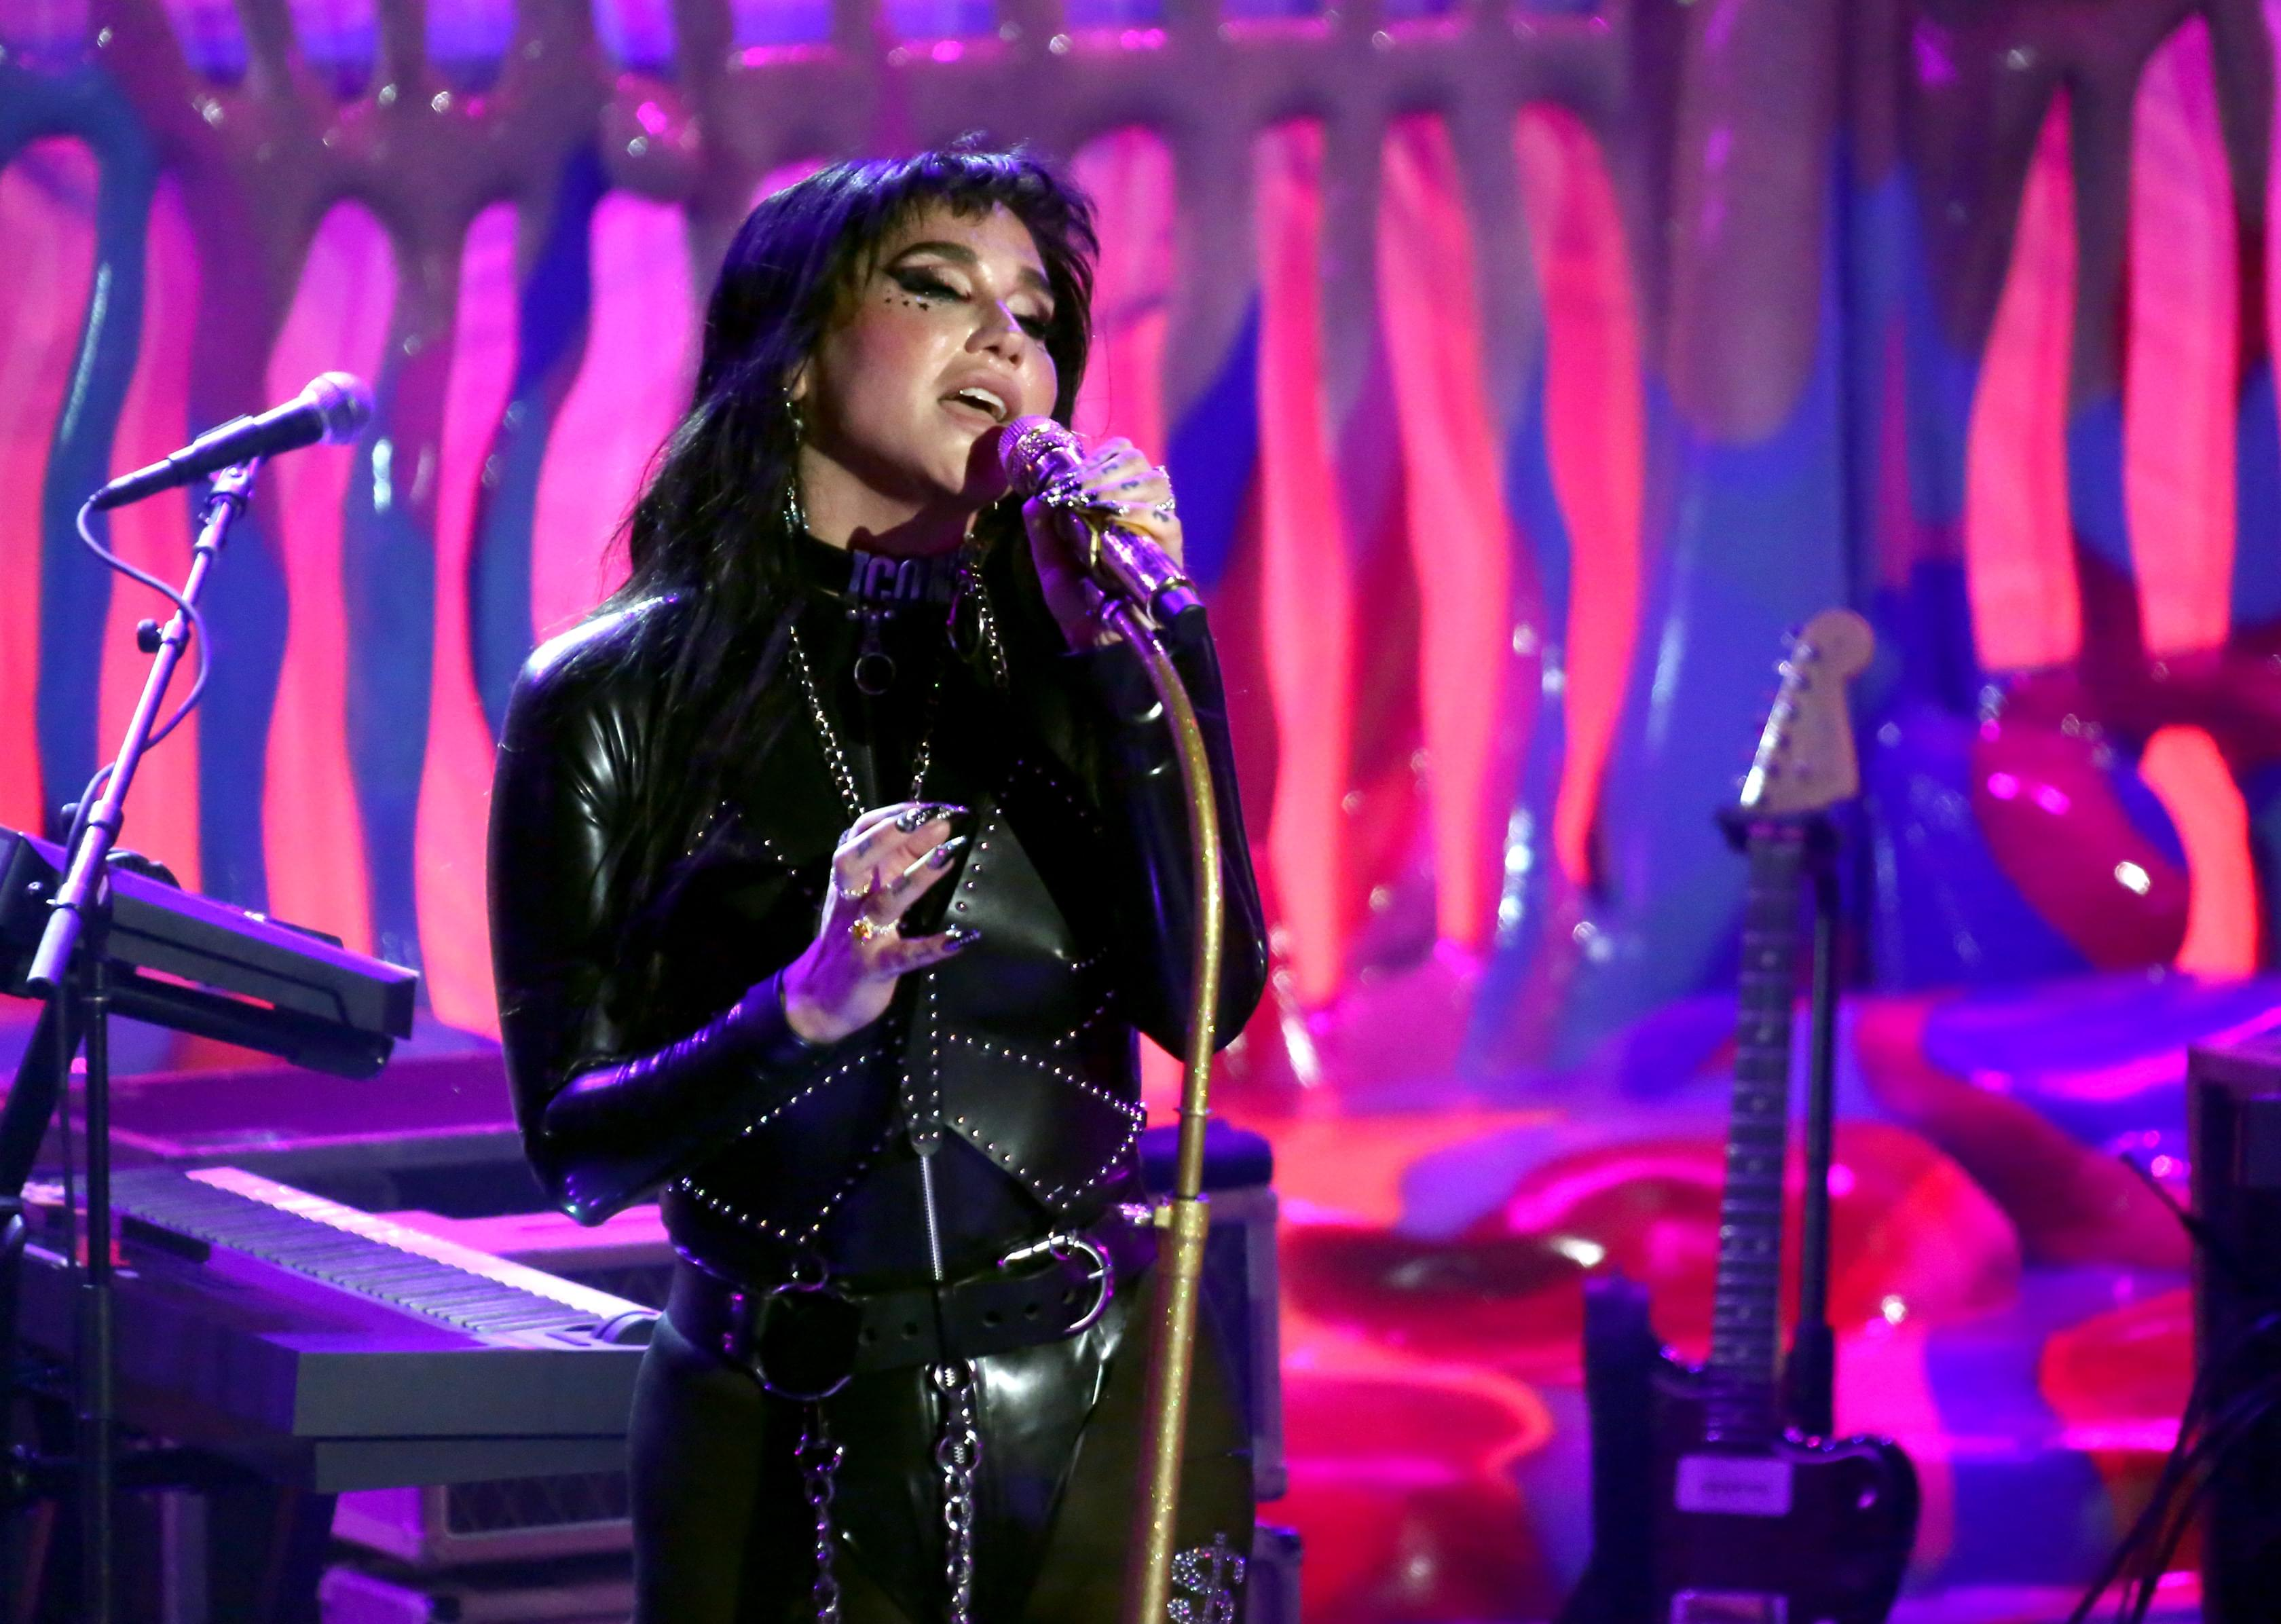 Kesha Gives Trippy Performance Of 'Resentment' on The Late Late Show with James Corden | Q-Daily